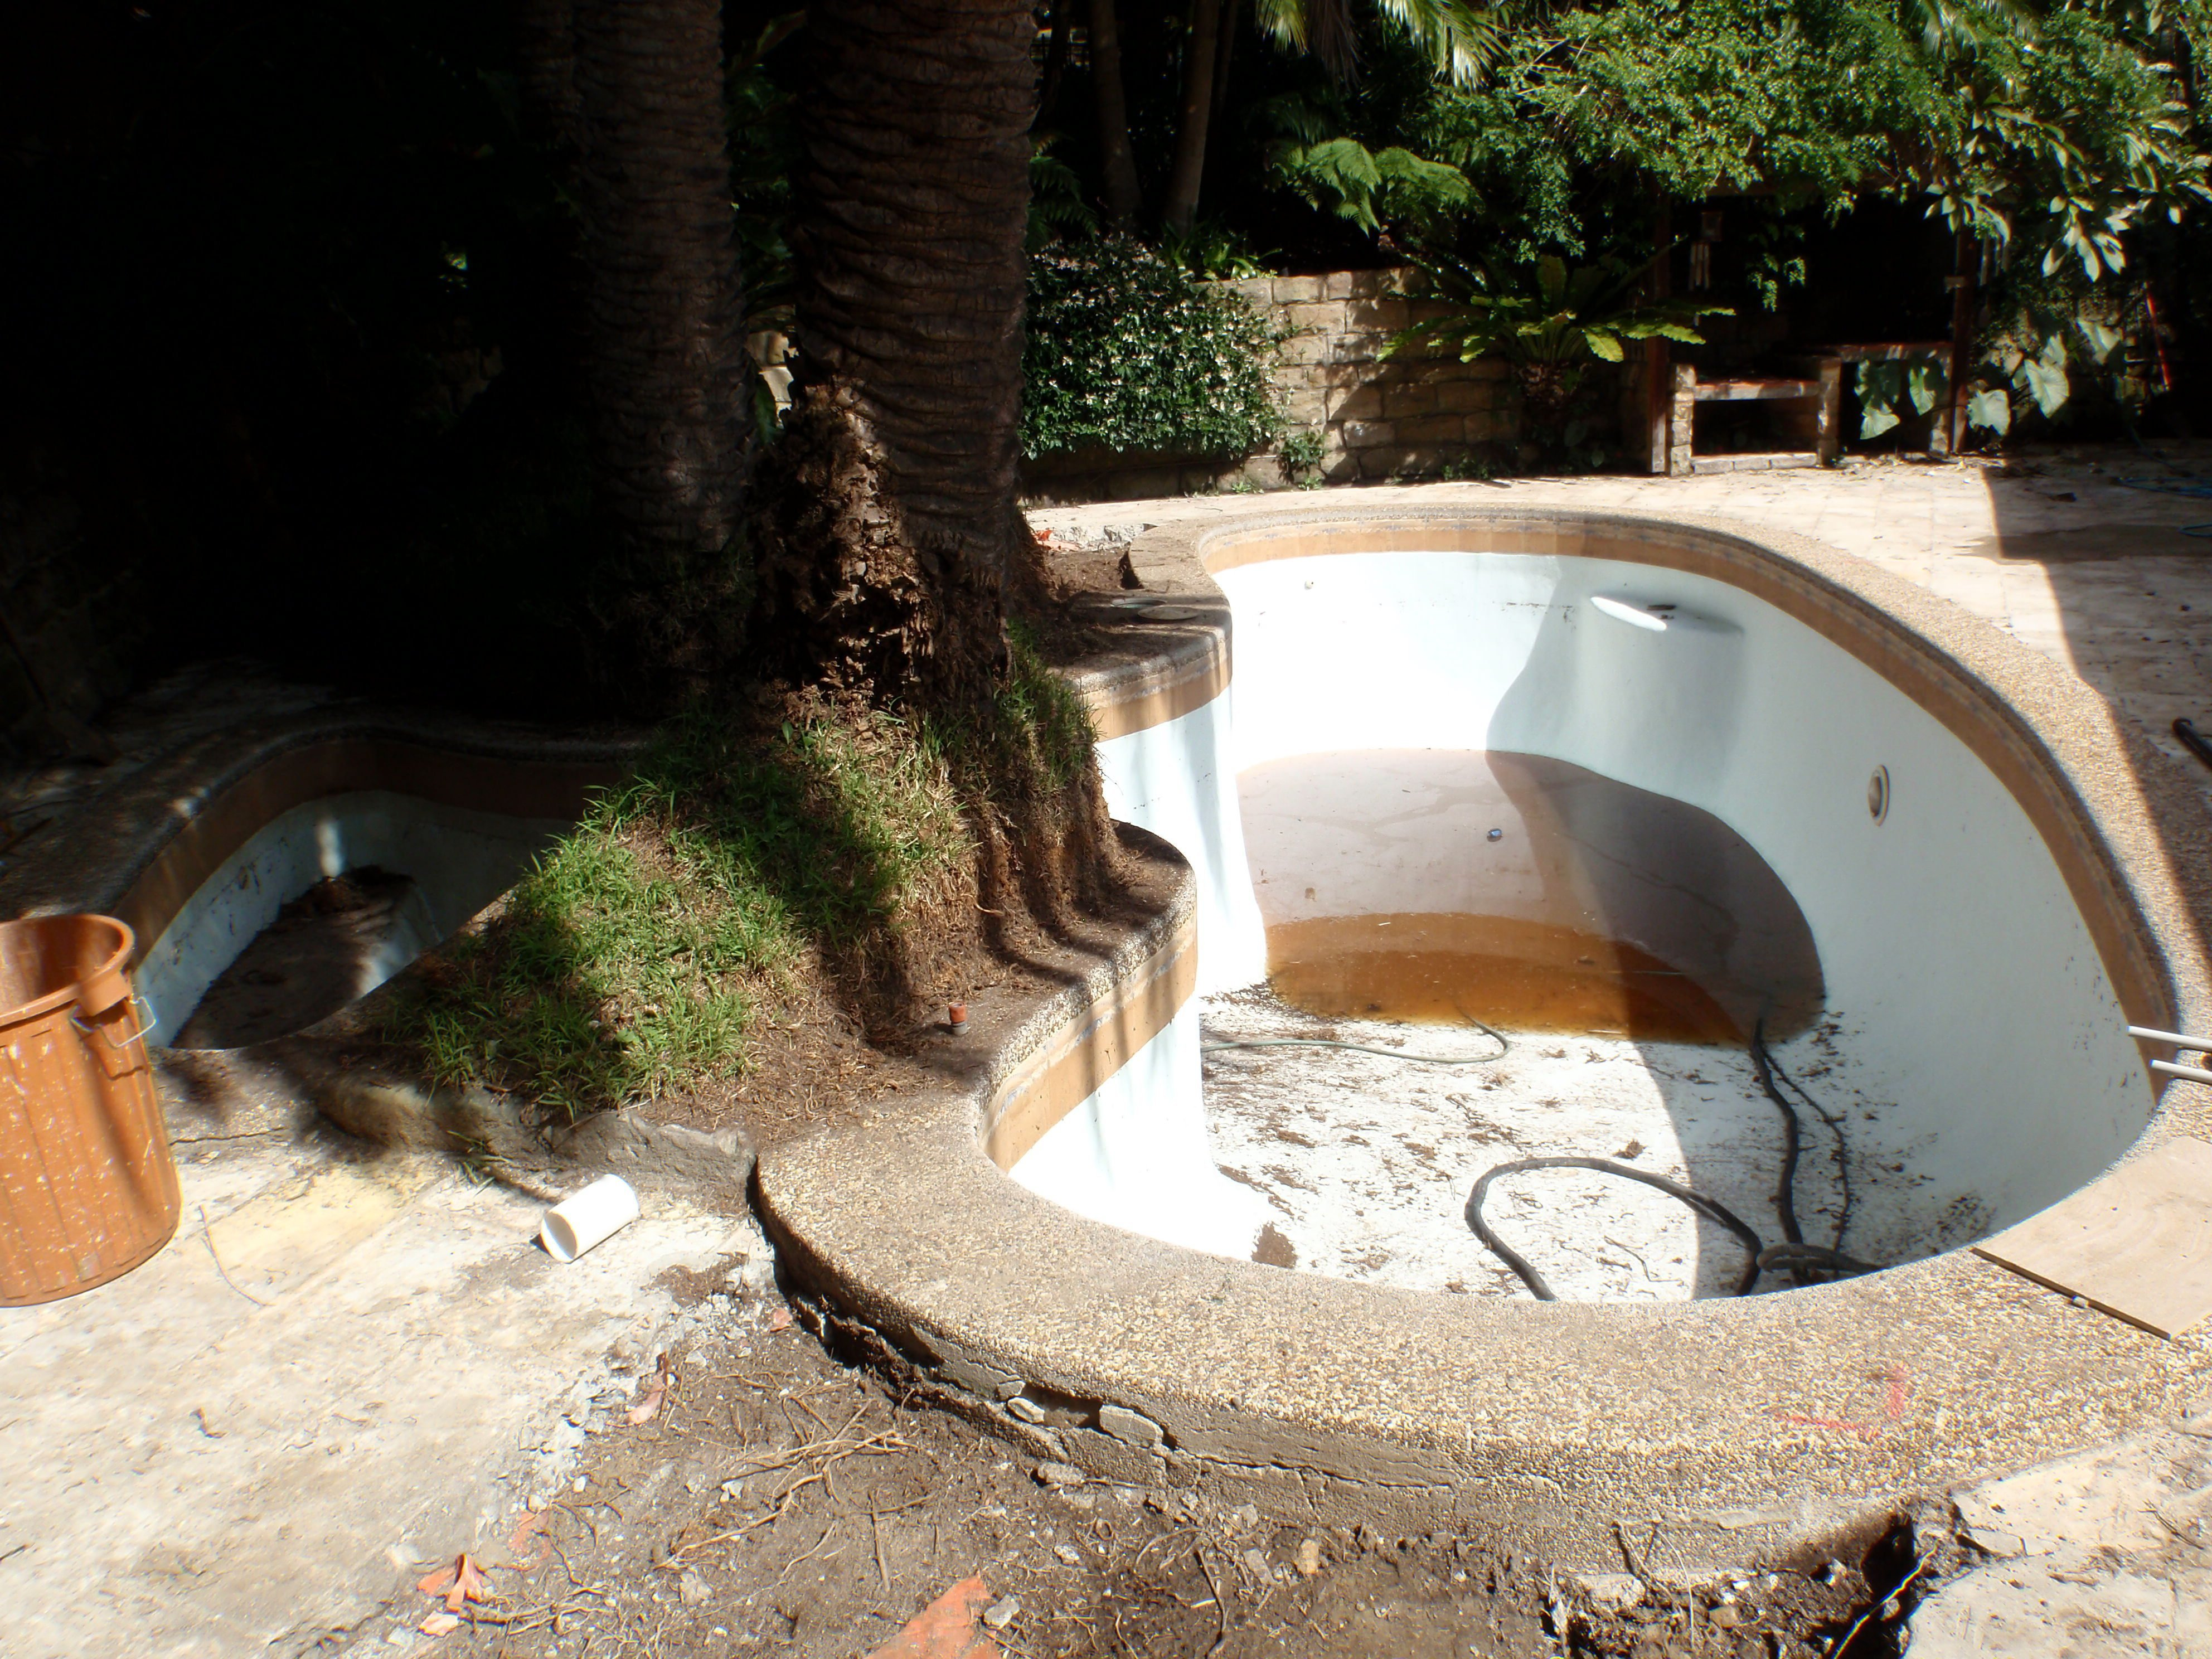 Pool being cleaned for restoration work